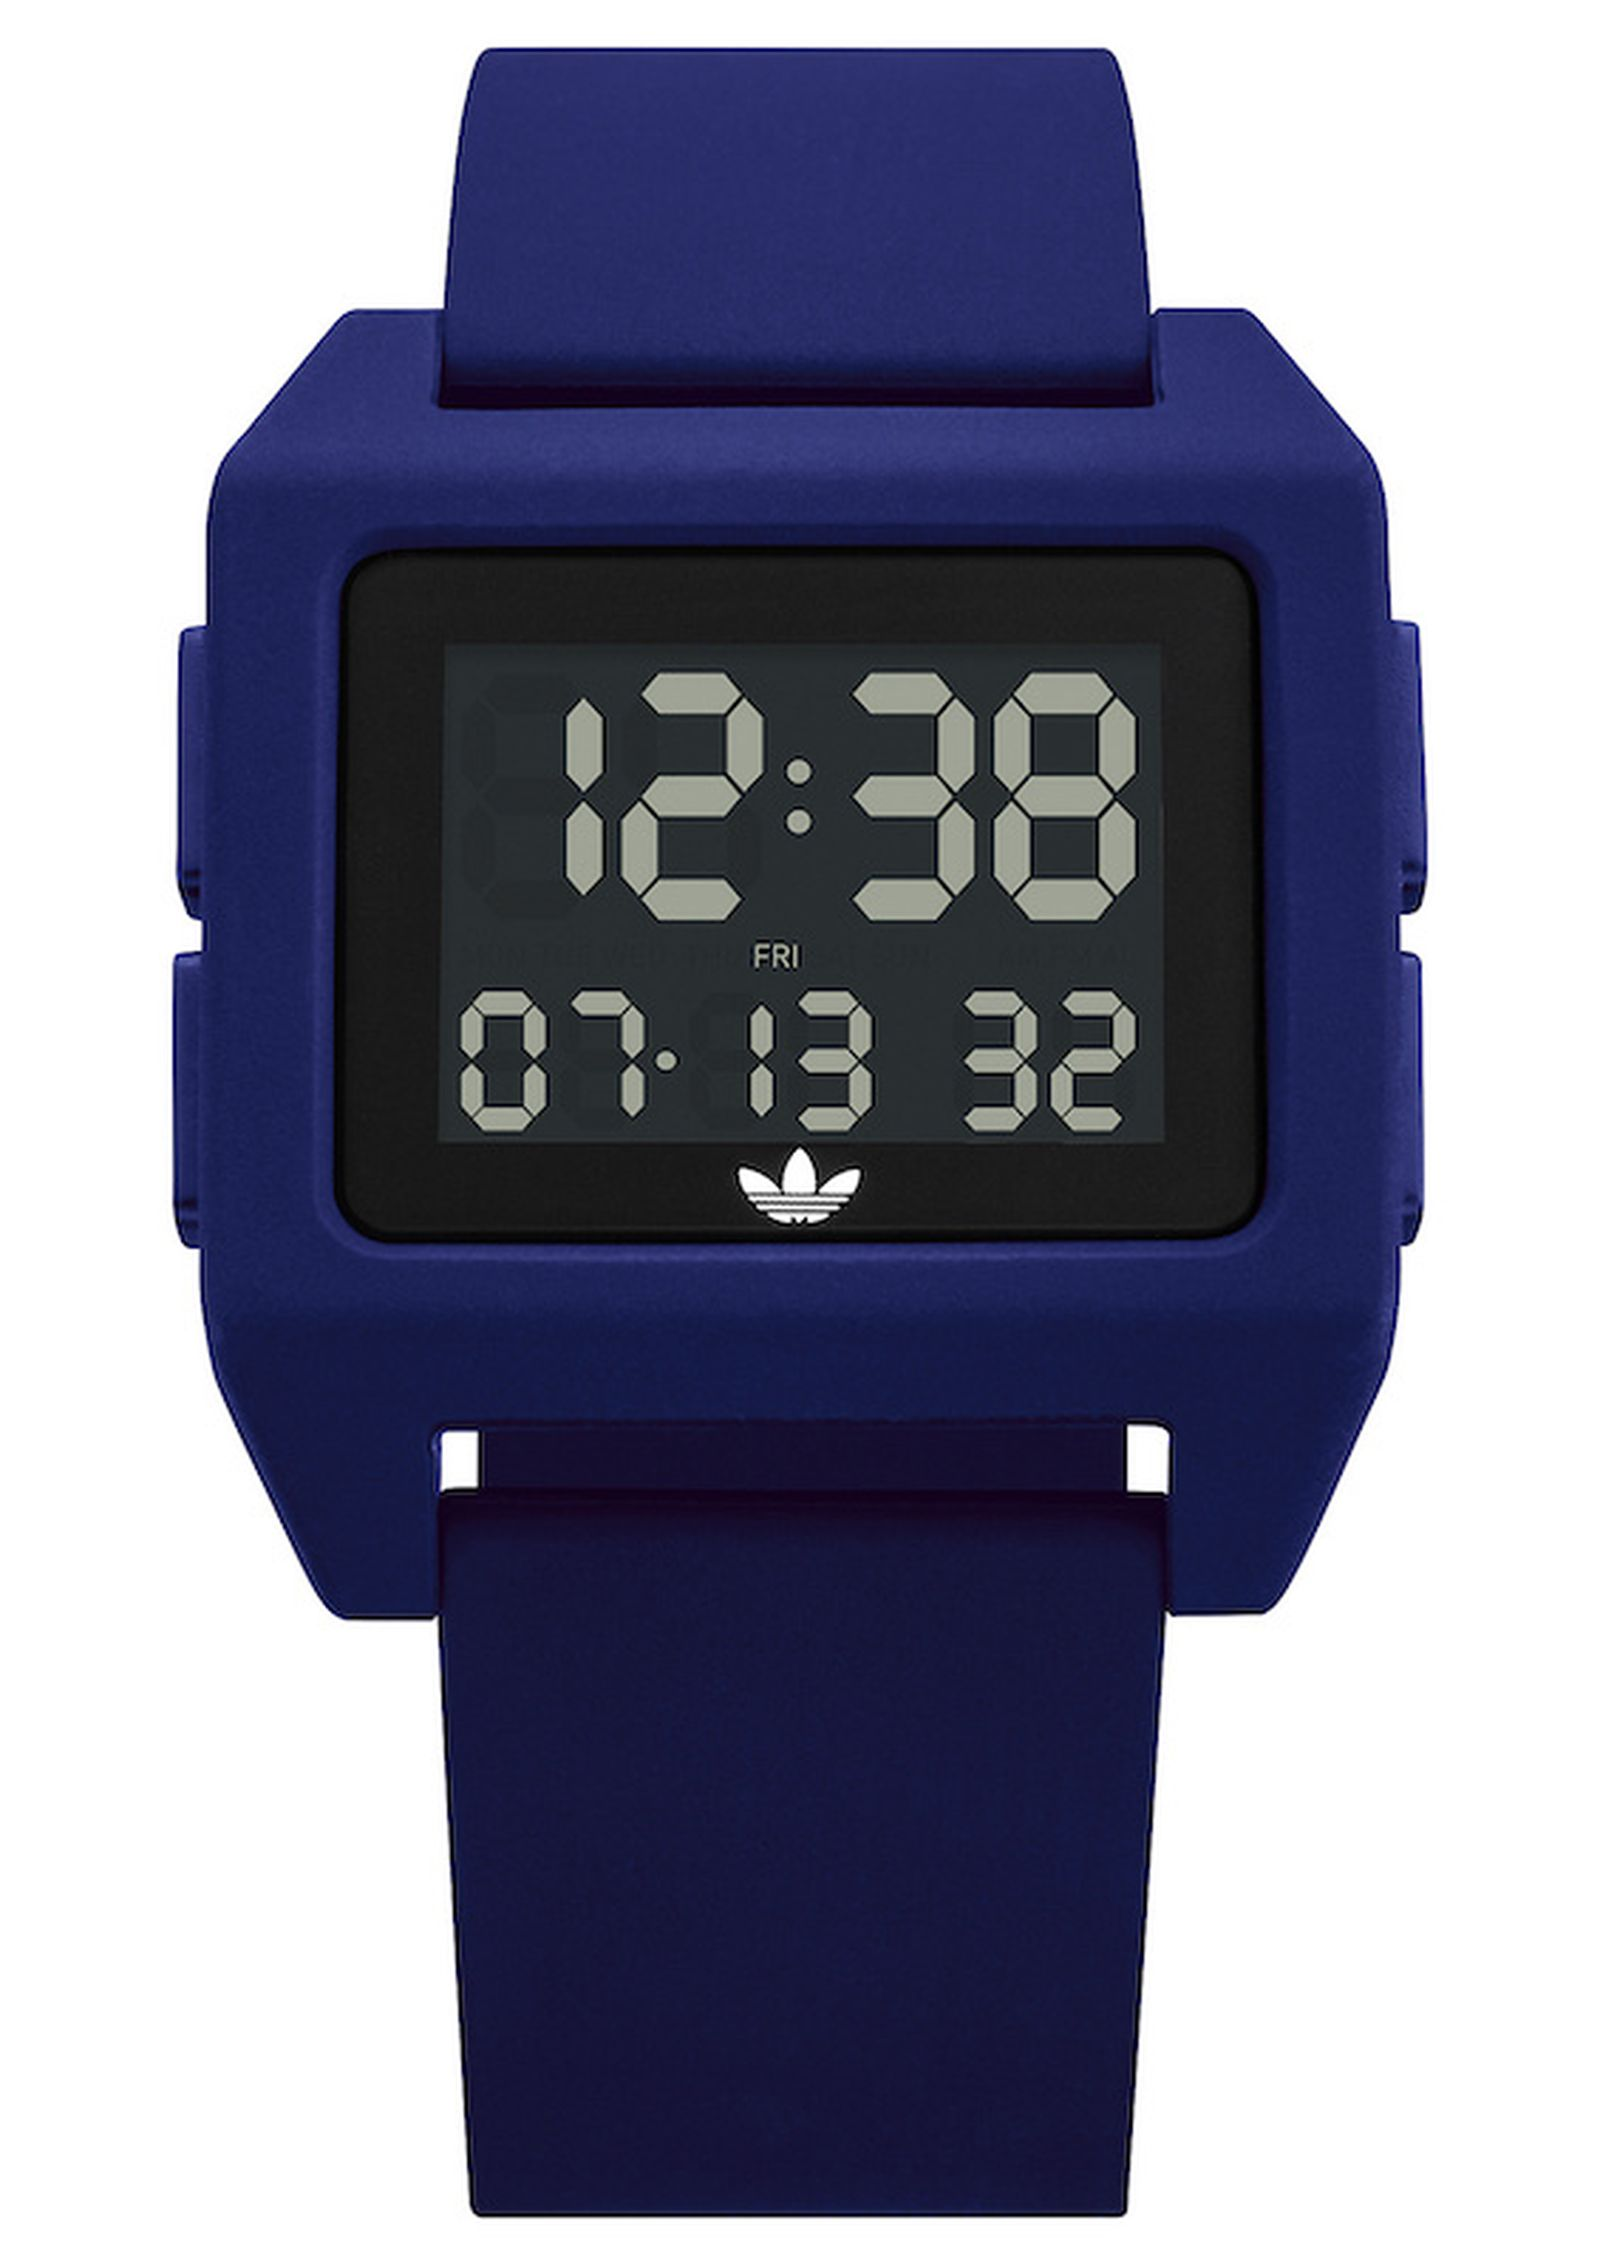 adidas-archive-watches-14